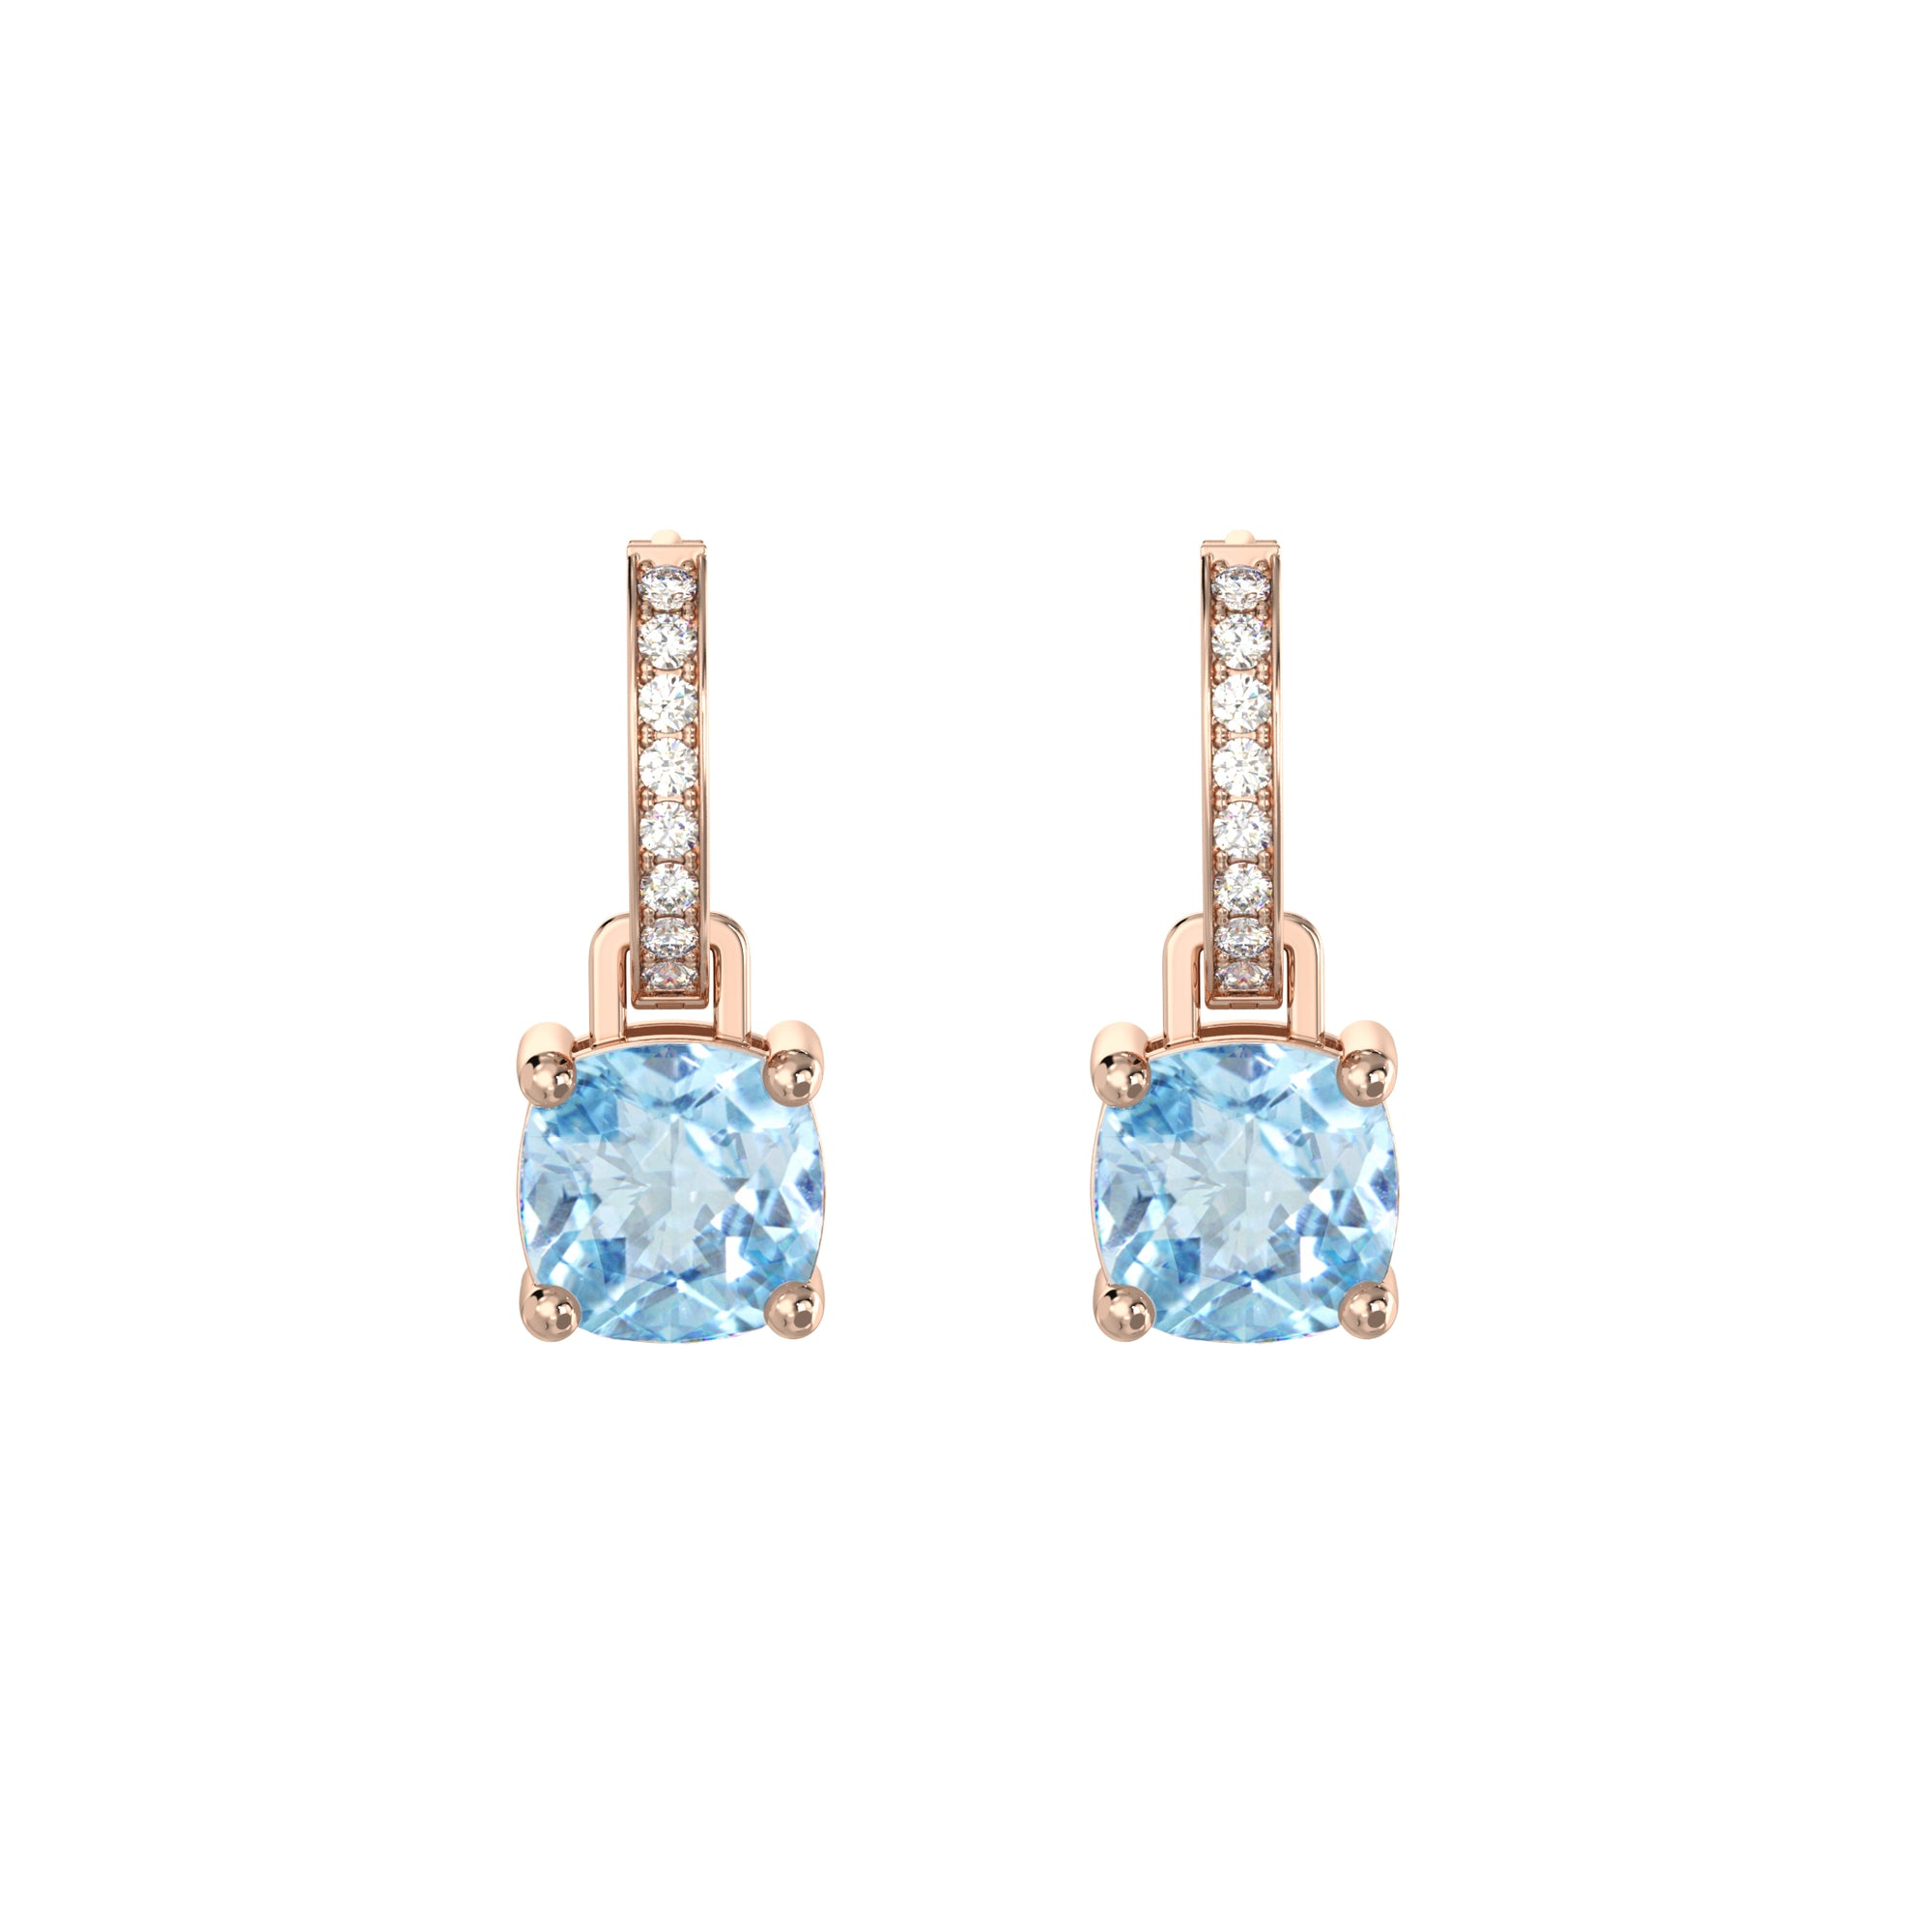 925 Silver Luxe Series Earrings Charms - Wylie (Topaz) - Rose Gold Plated